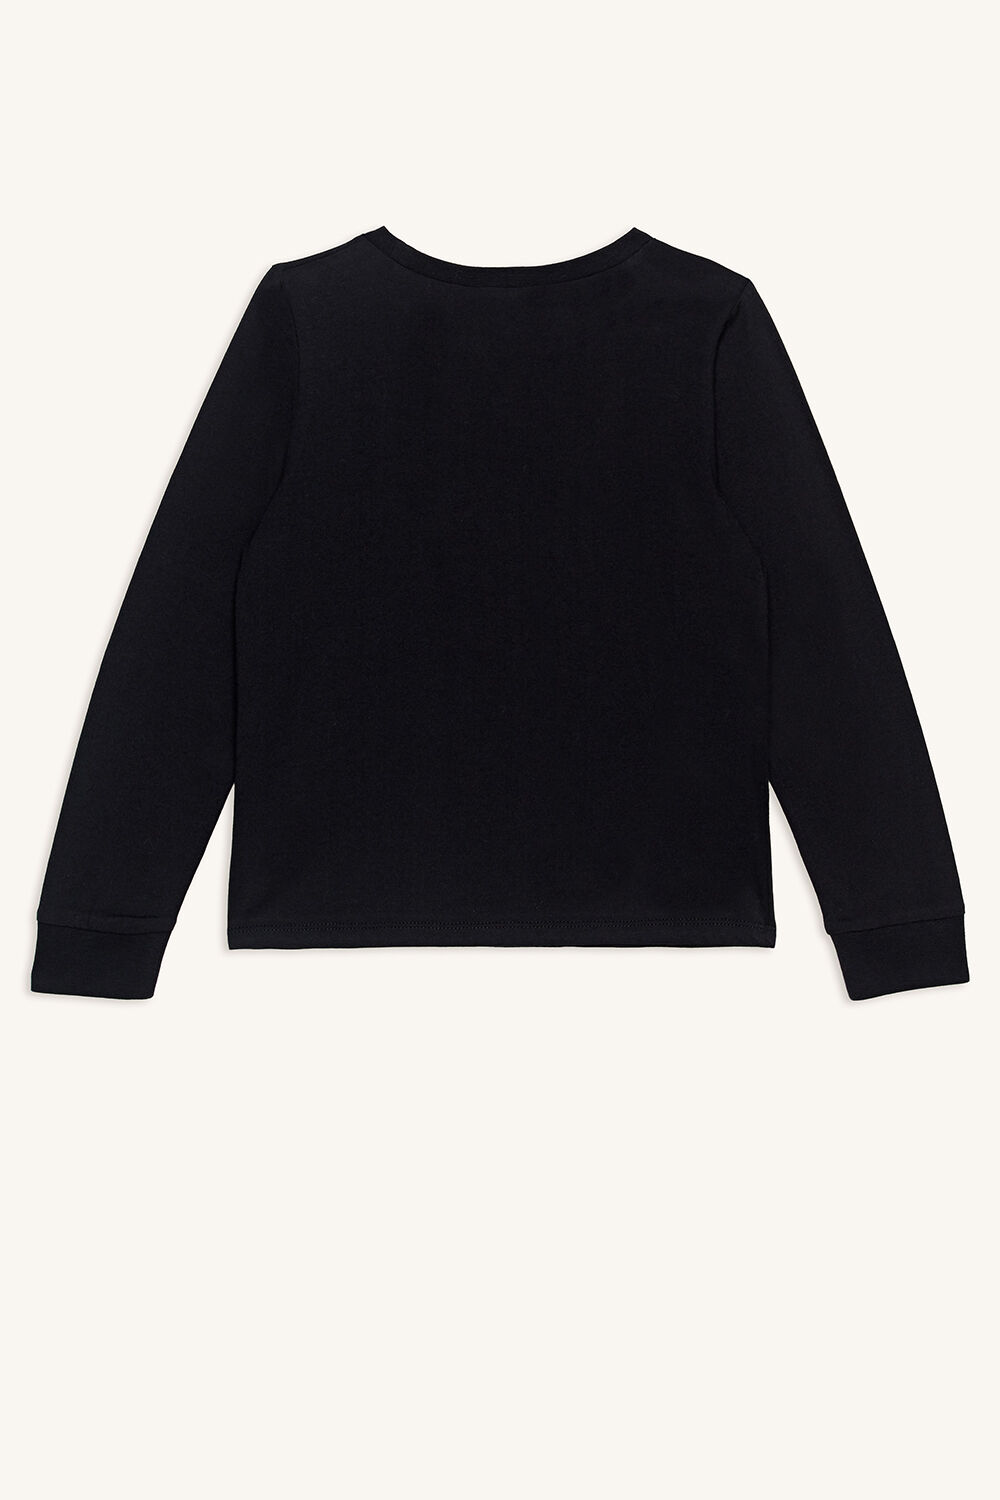 ELECTRIC LONG SLEEVE TOP in colour JET BLACK